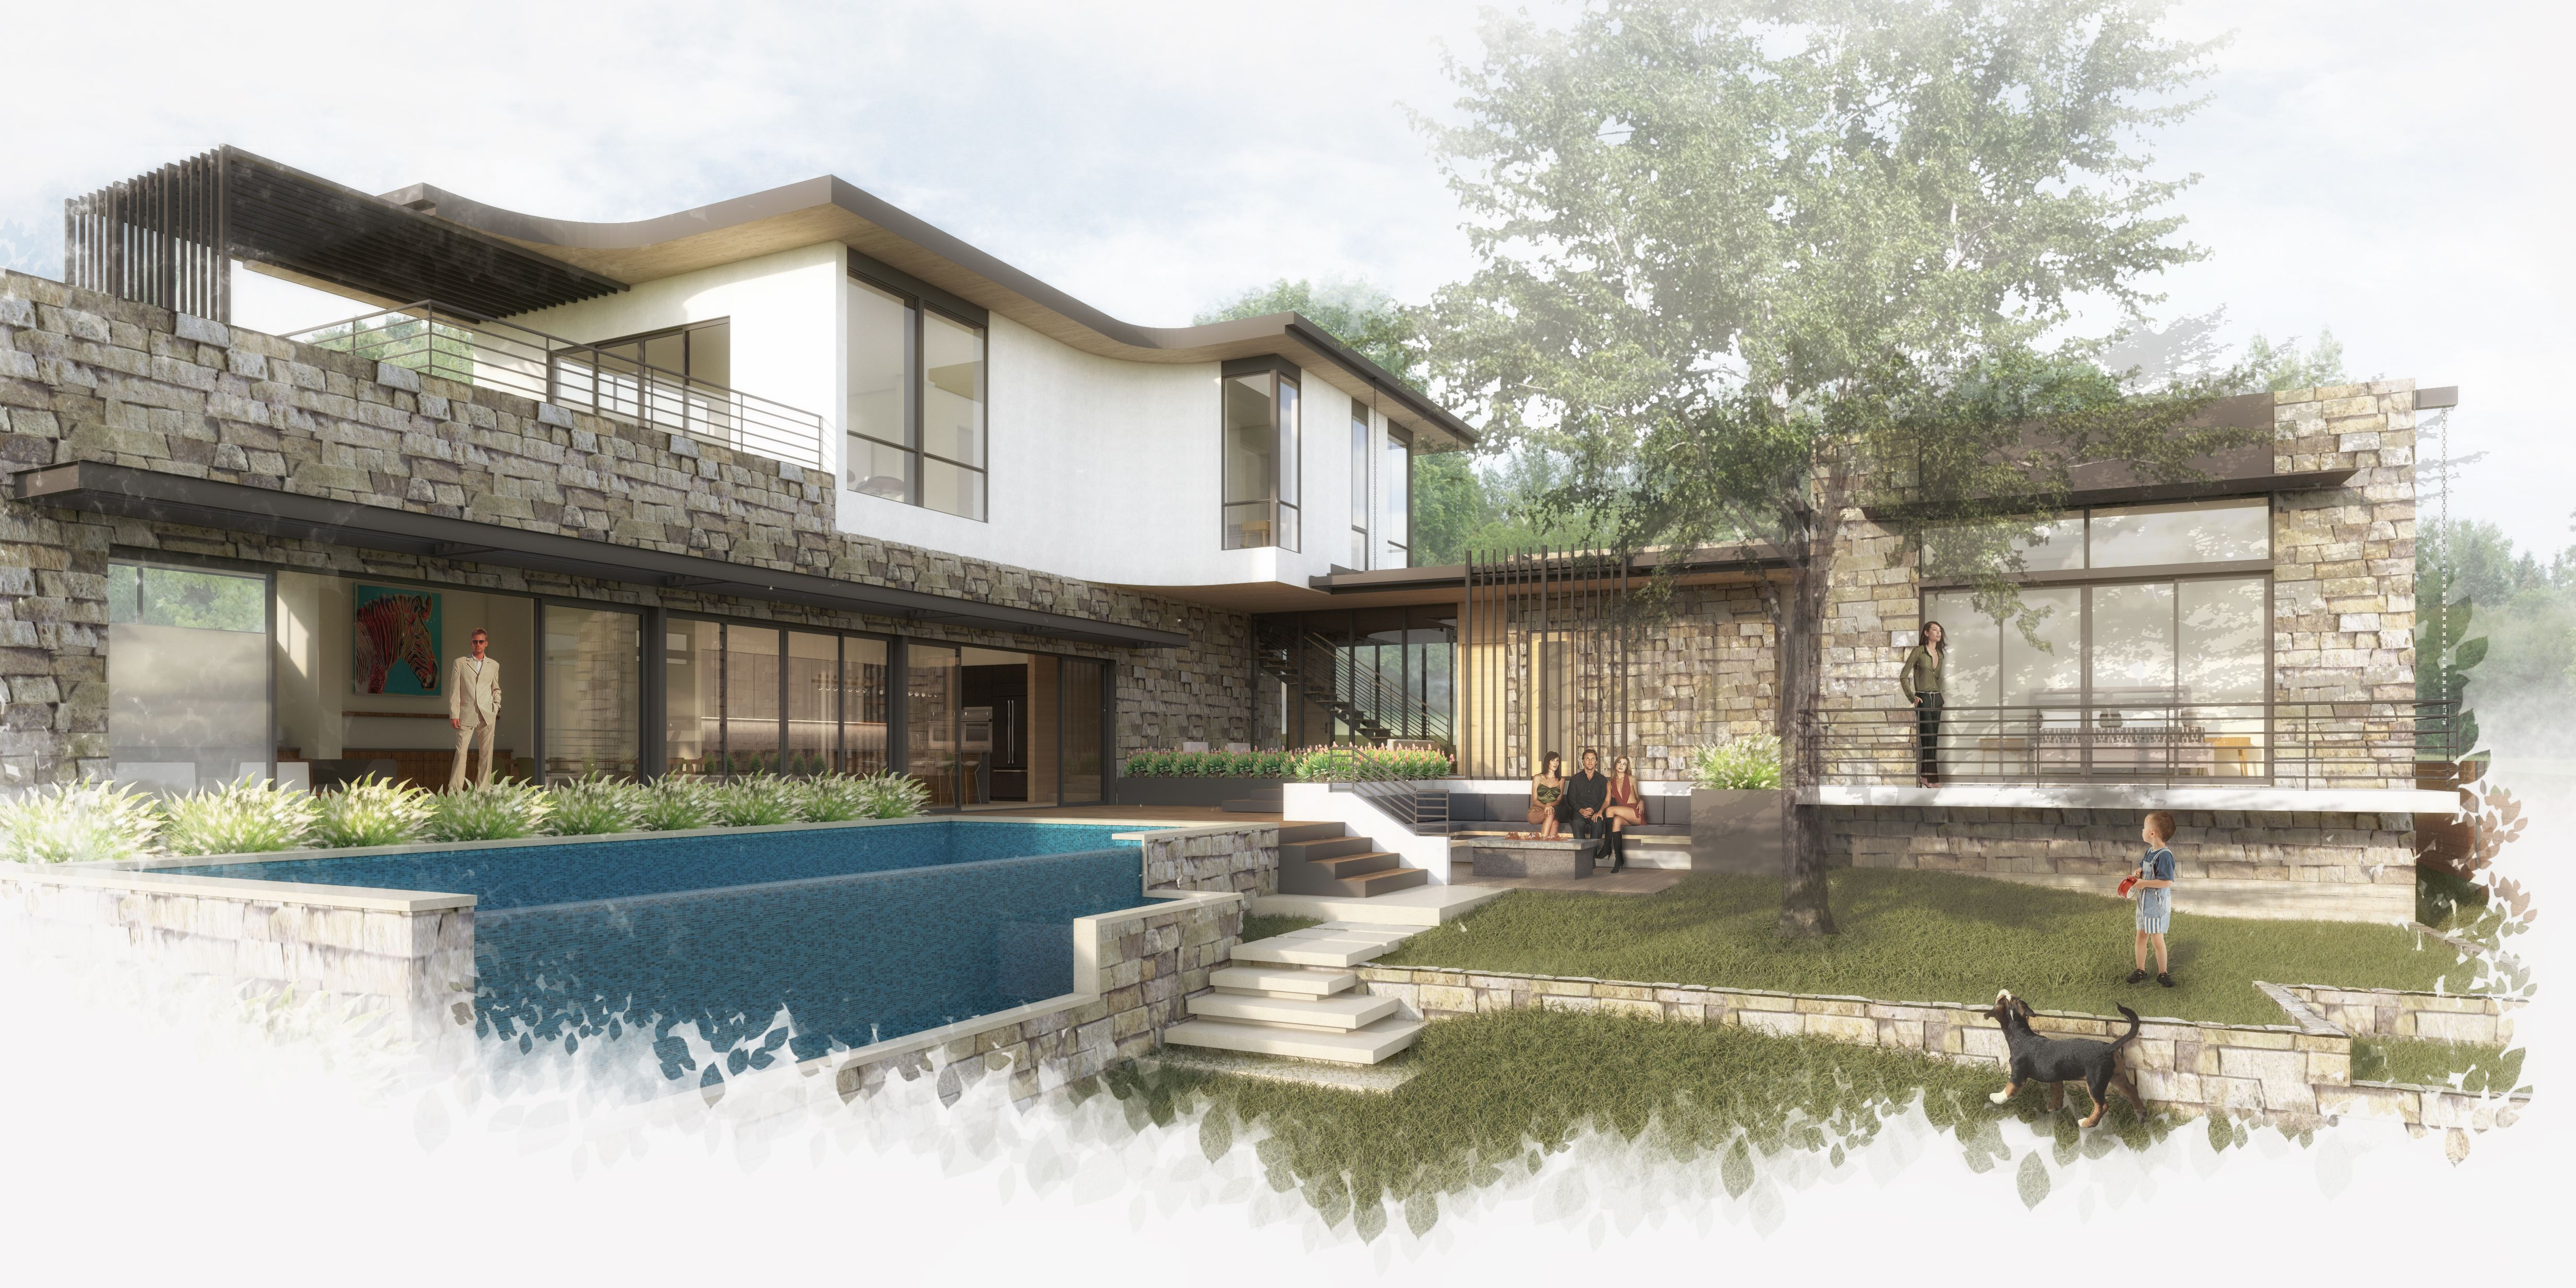 2019_0115 Paramount Residence-Final Rendering-Backyard.jpg